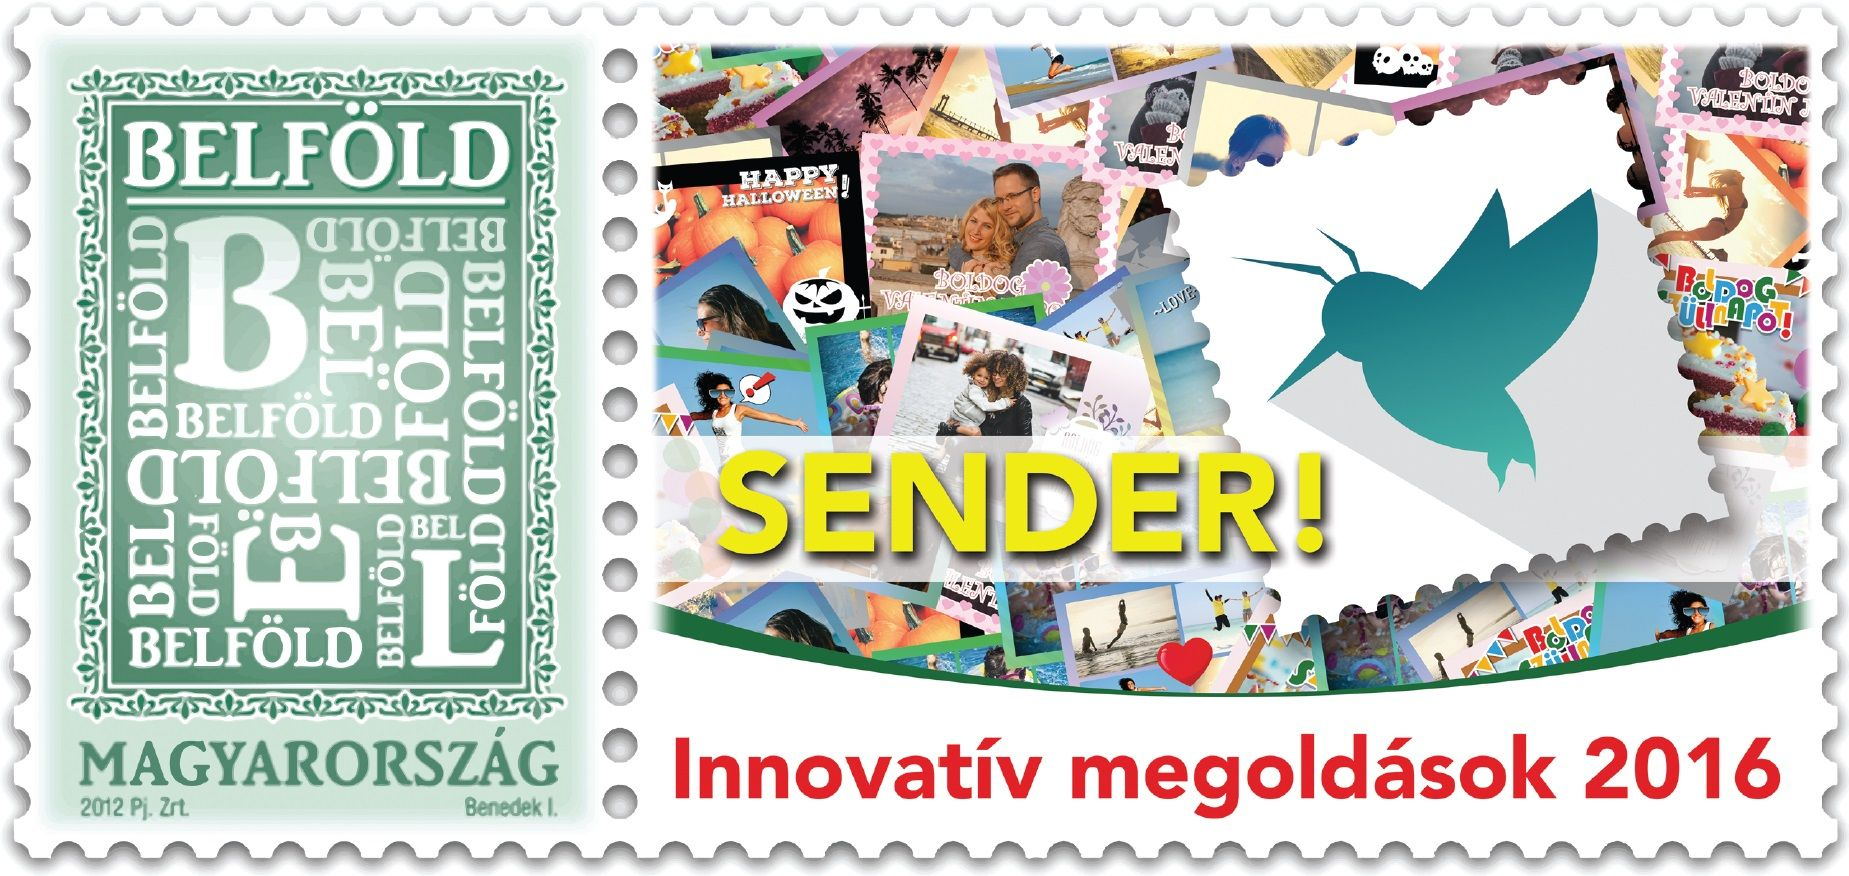 Innovative Solutions 2016: Sender!